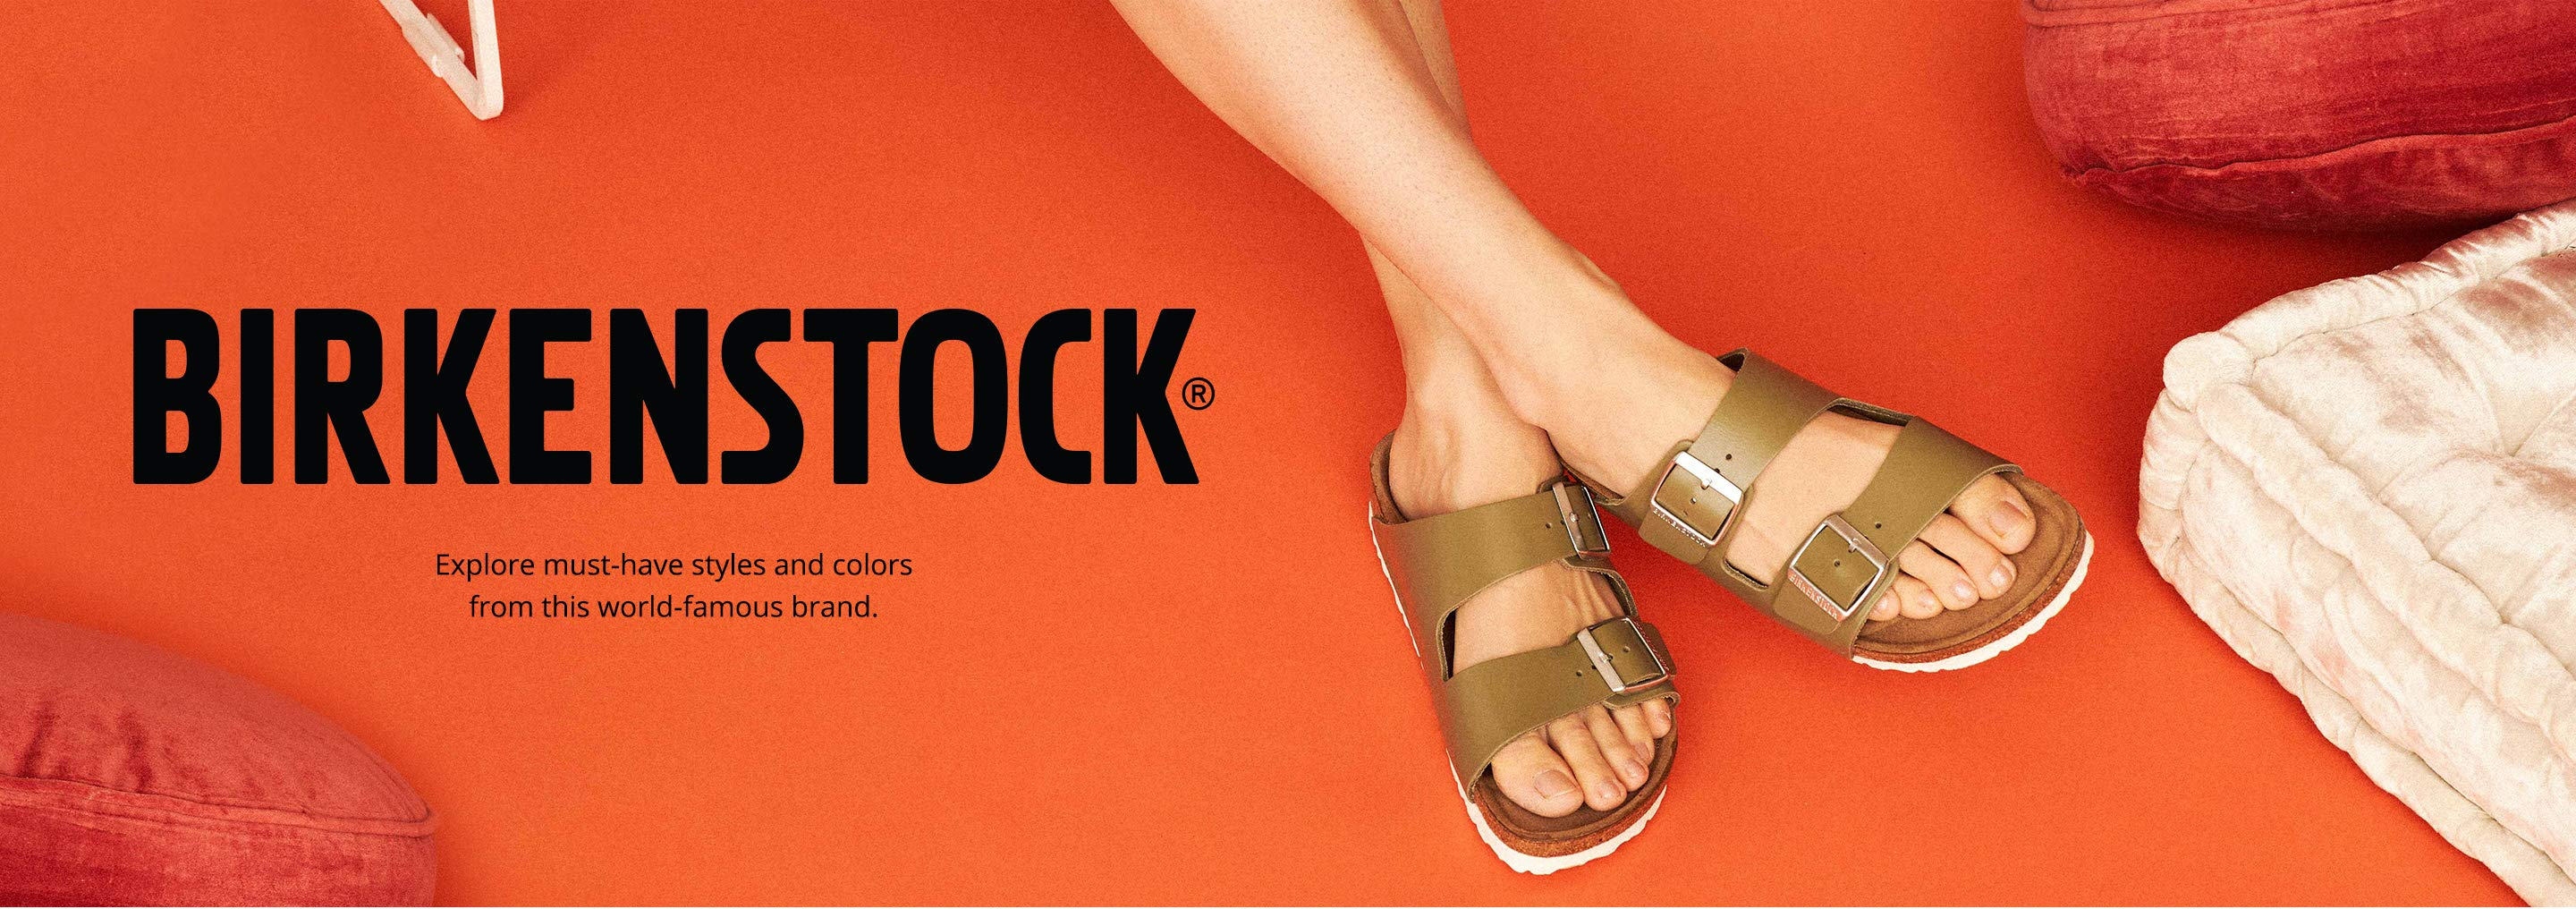 Birkenstock. Explore the must-have styles and colors from this world-famous brand.